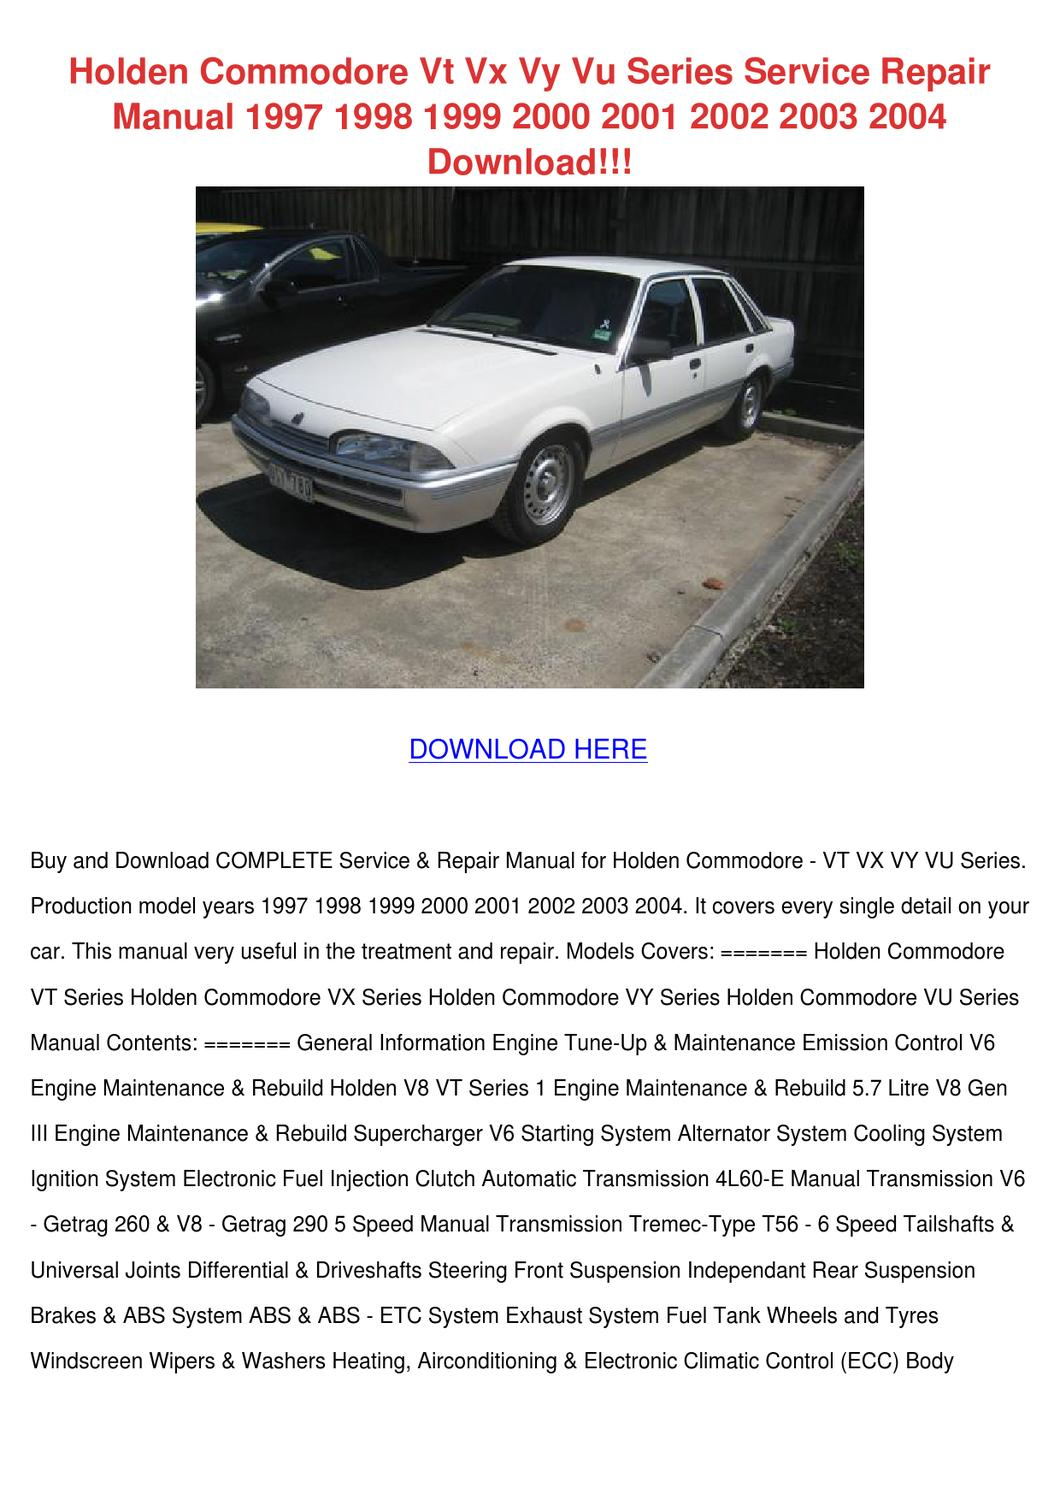 Holden Commodore Vt Vx Vy Vu Series Service R by MilagrosMonk - issuu